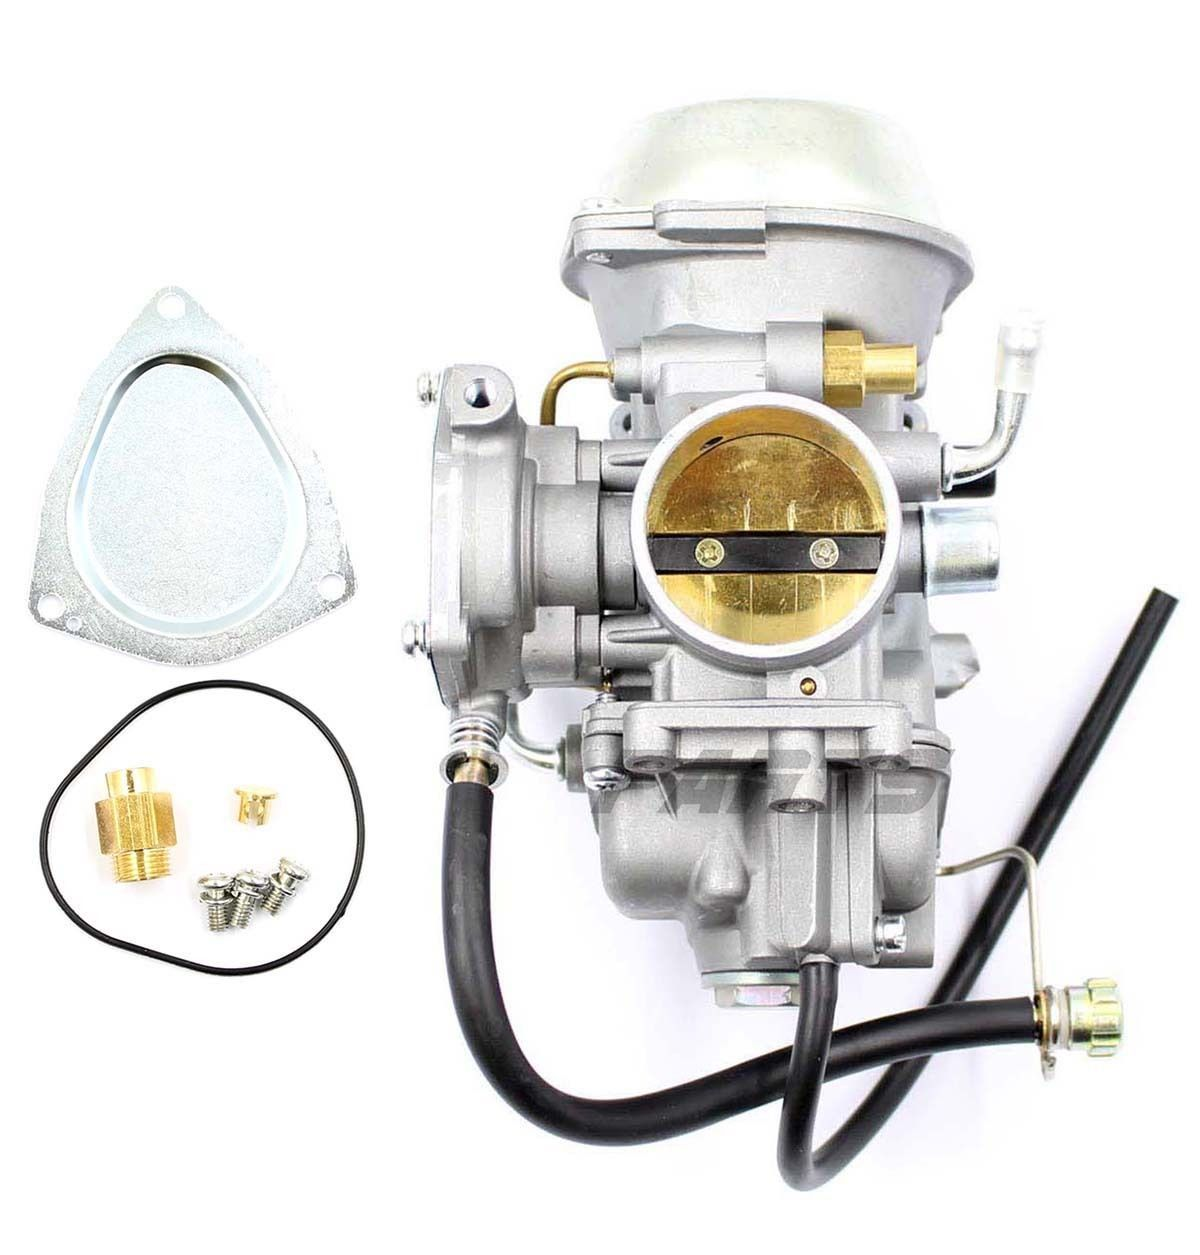 New Carburetor For Polaris Sportsman 500 4X4 HO 2001-2005